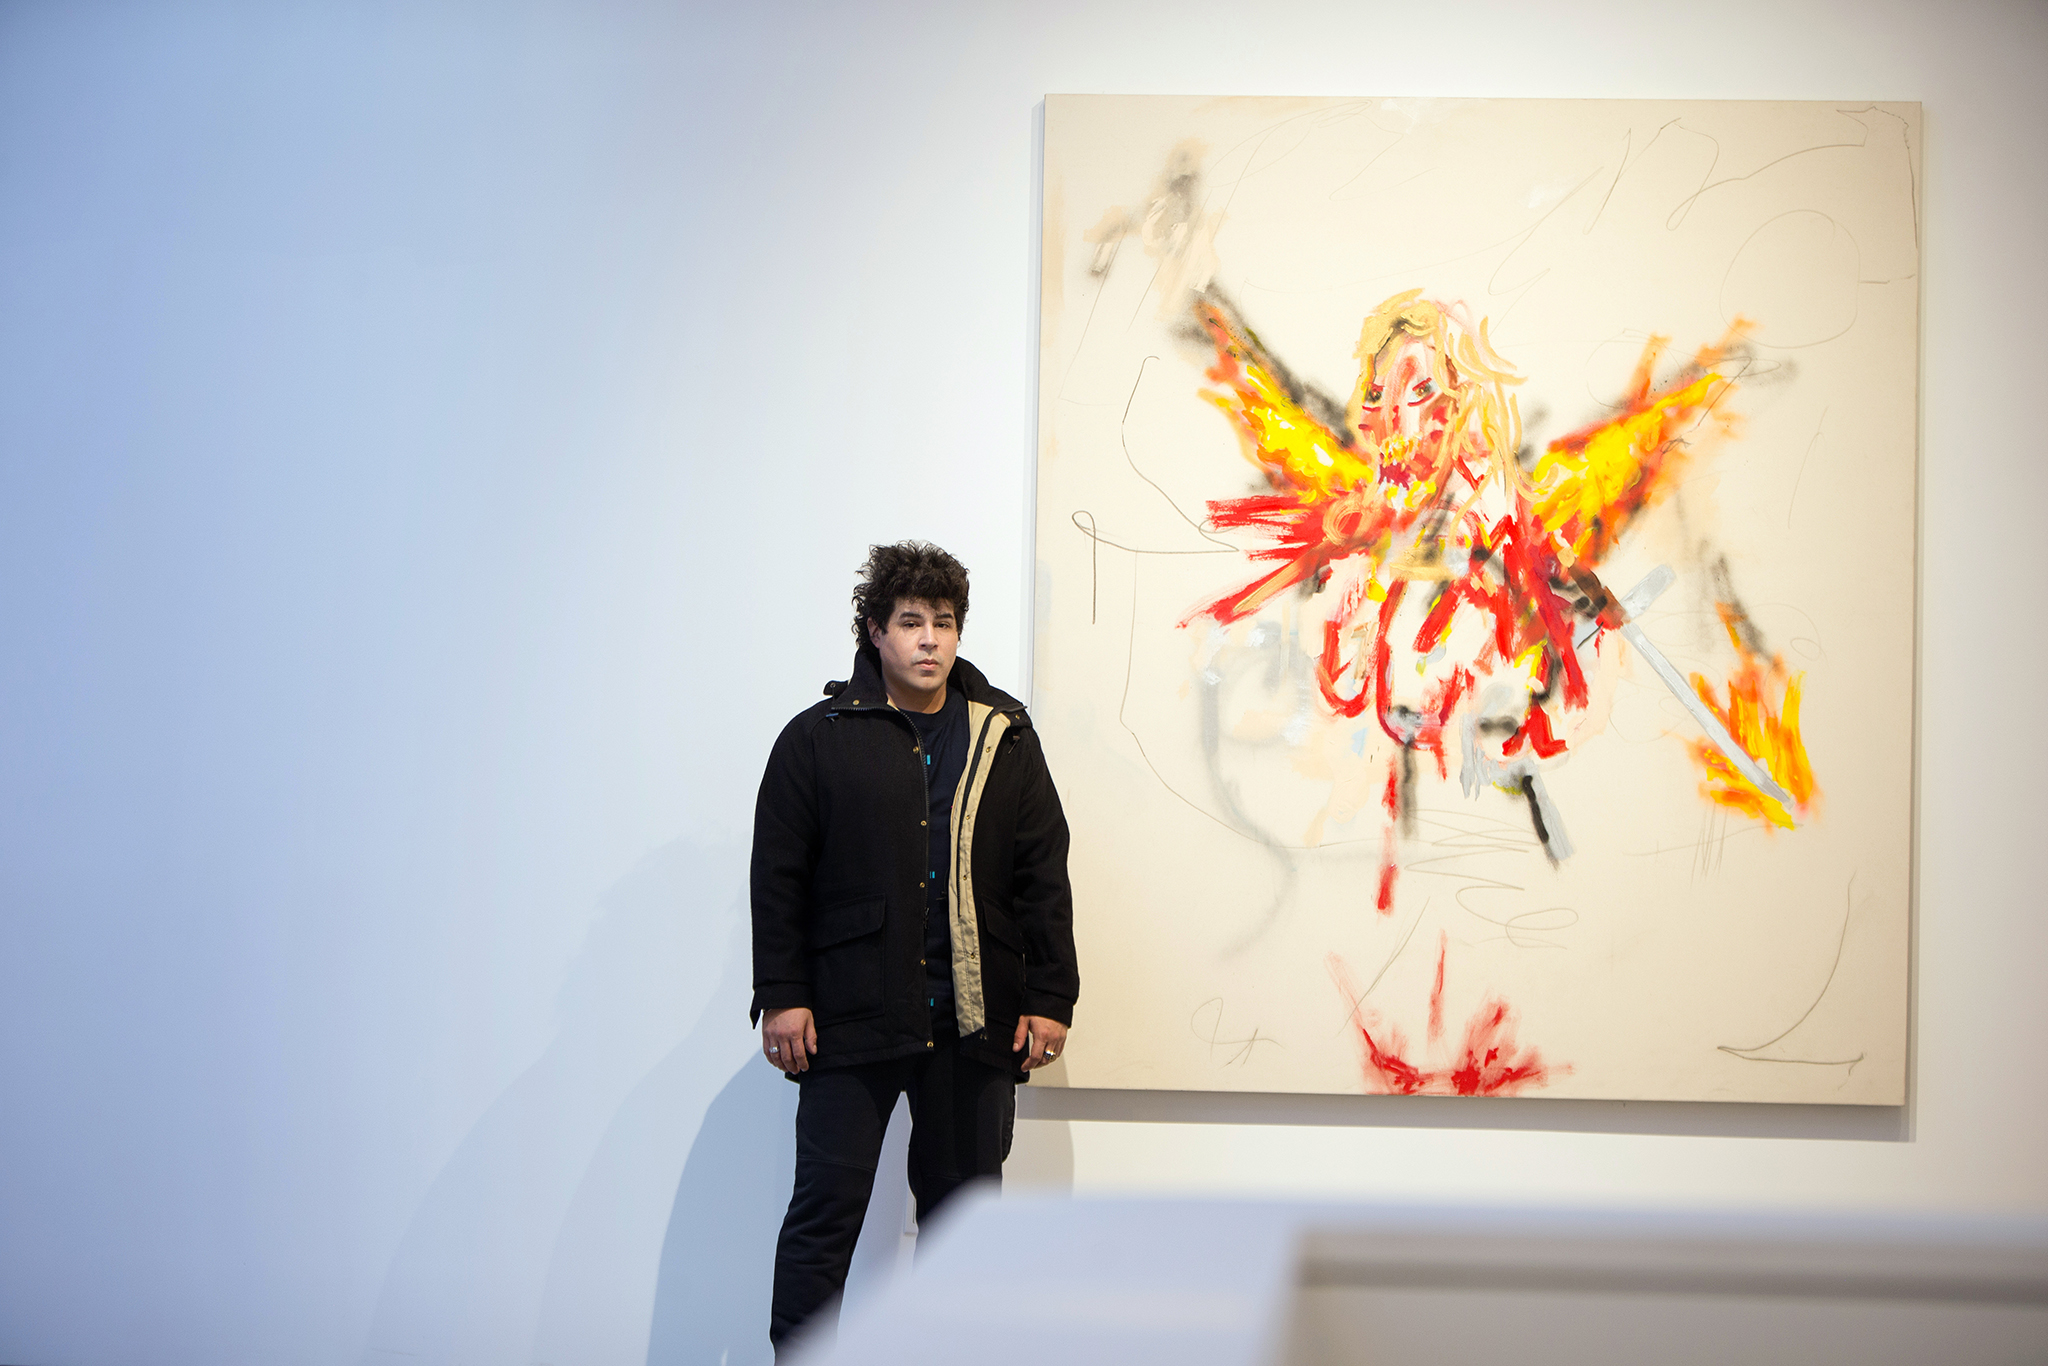 Painter Robert Nava Brings His Angels to Chelsea